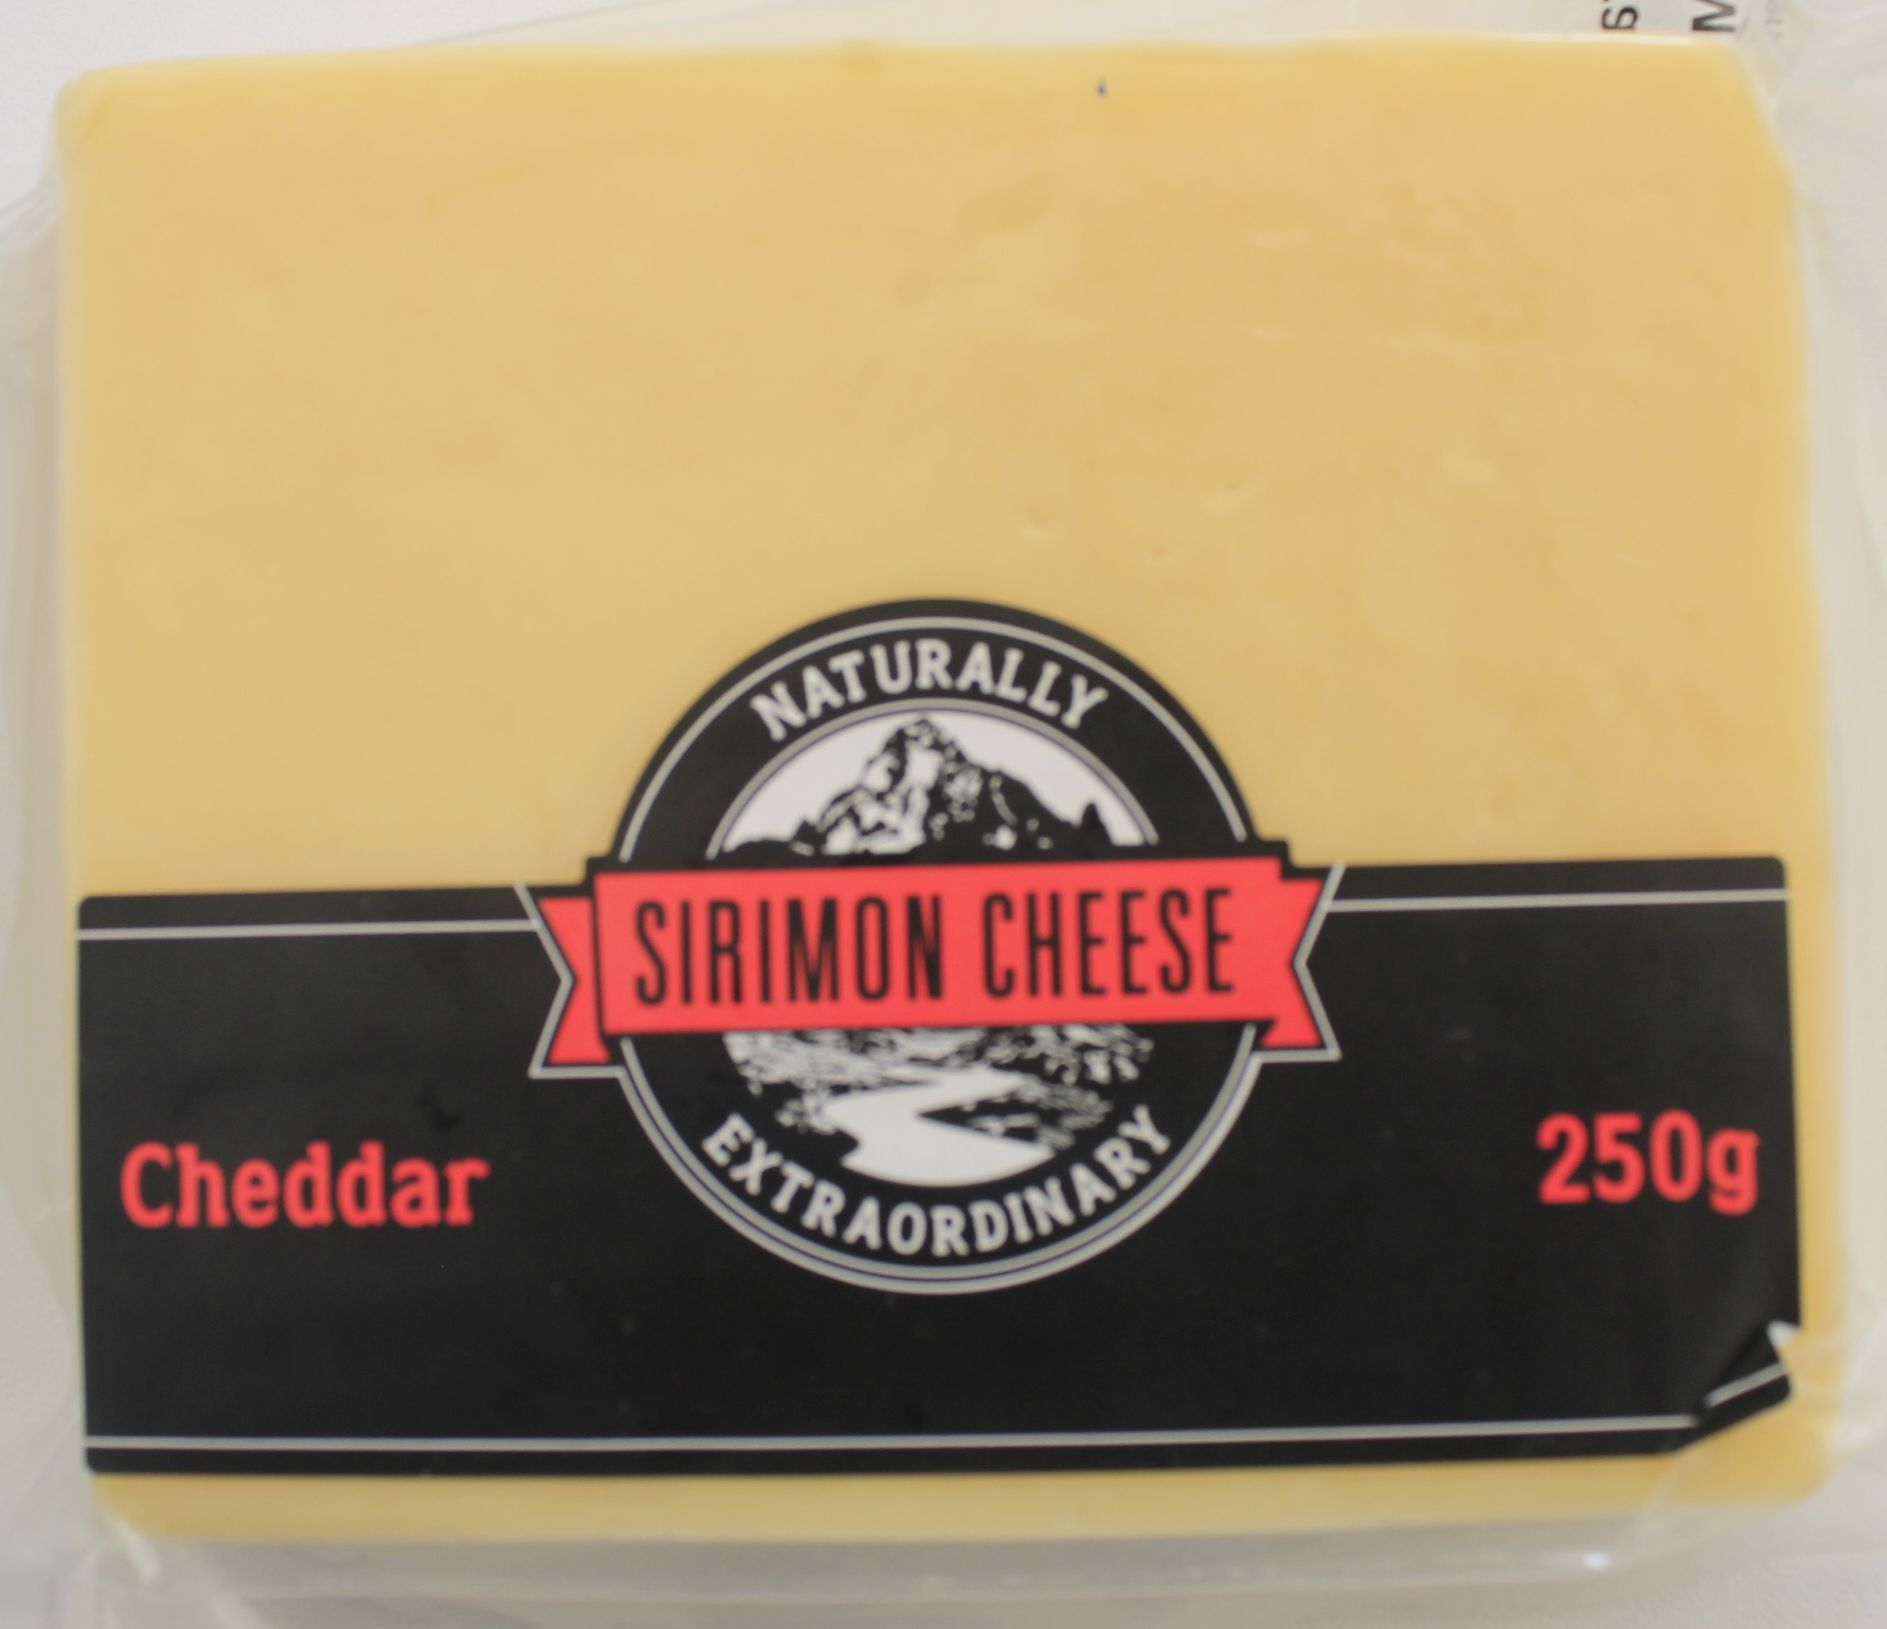 Sirimon Cheese Cheddar 250gms